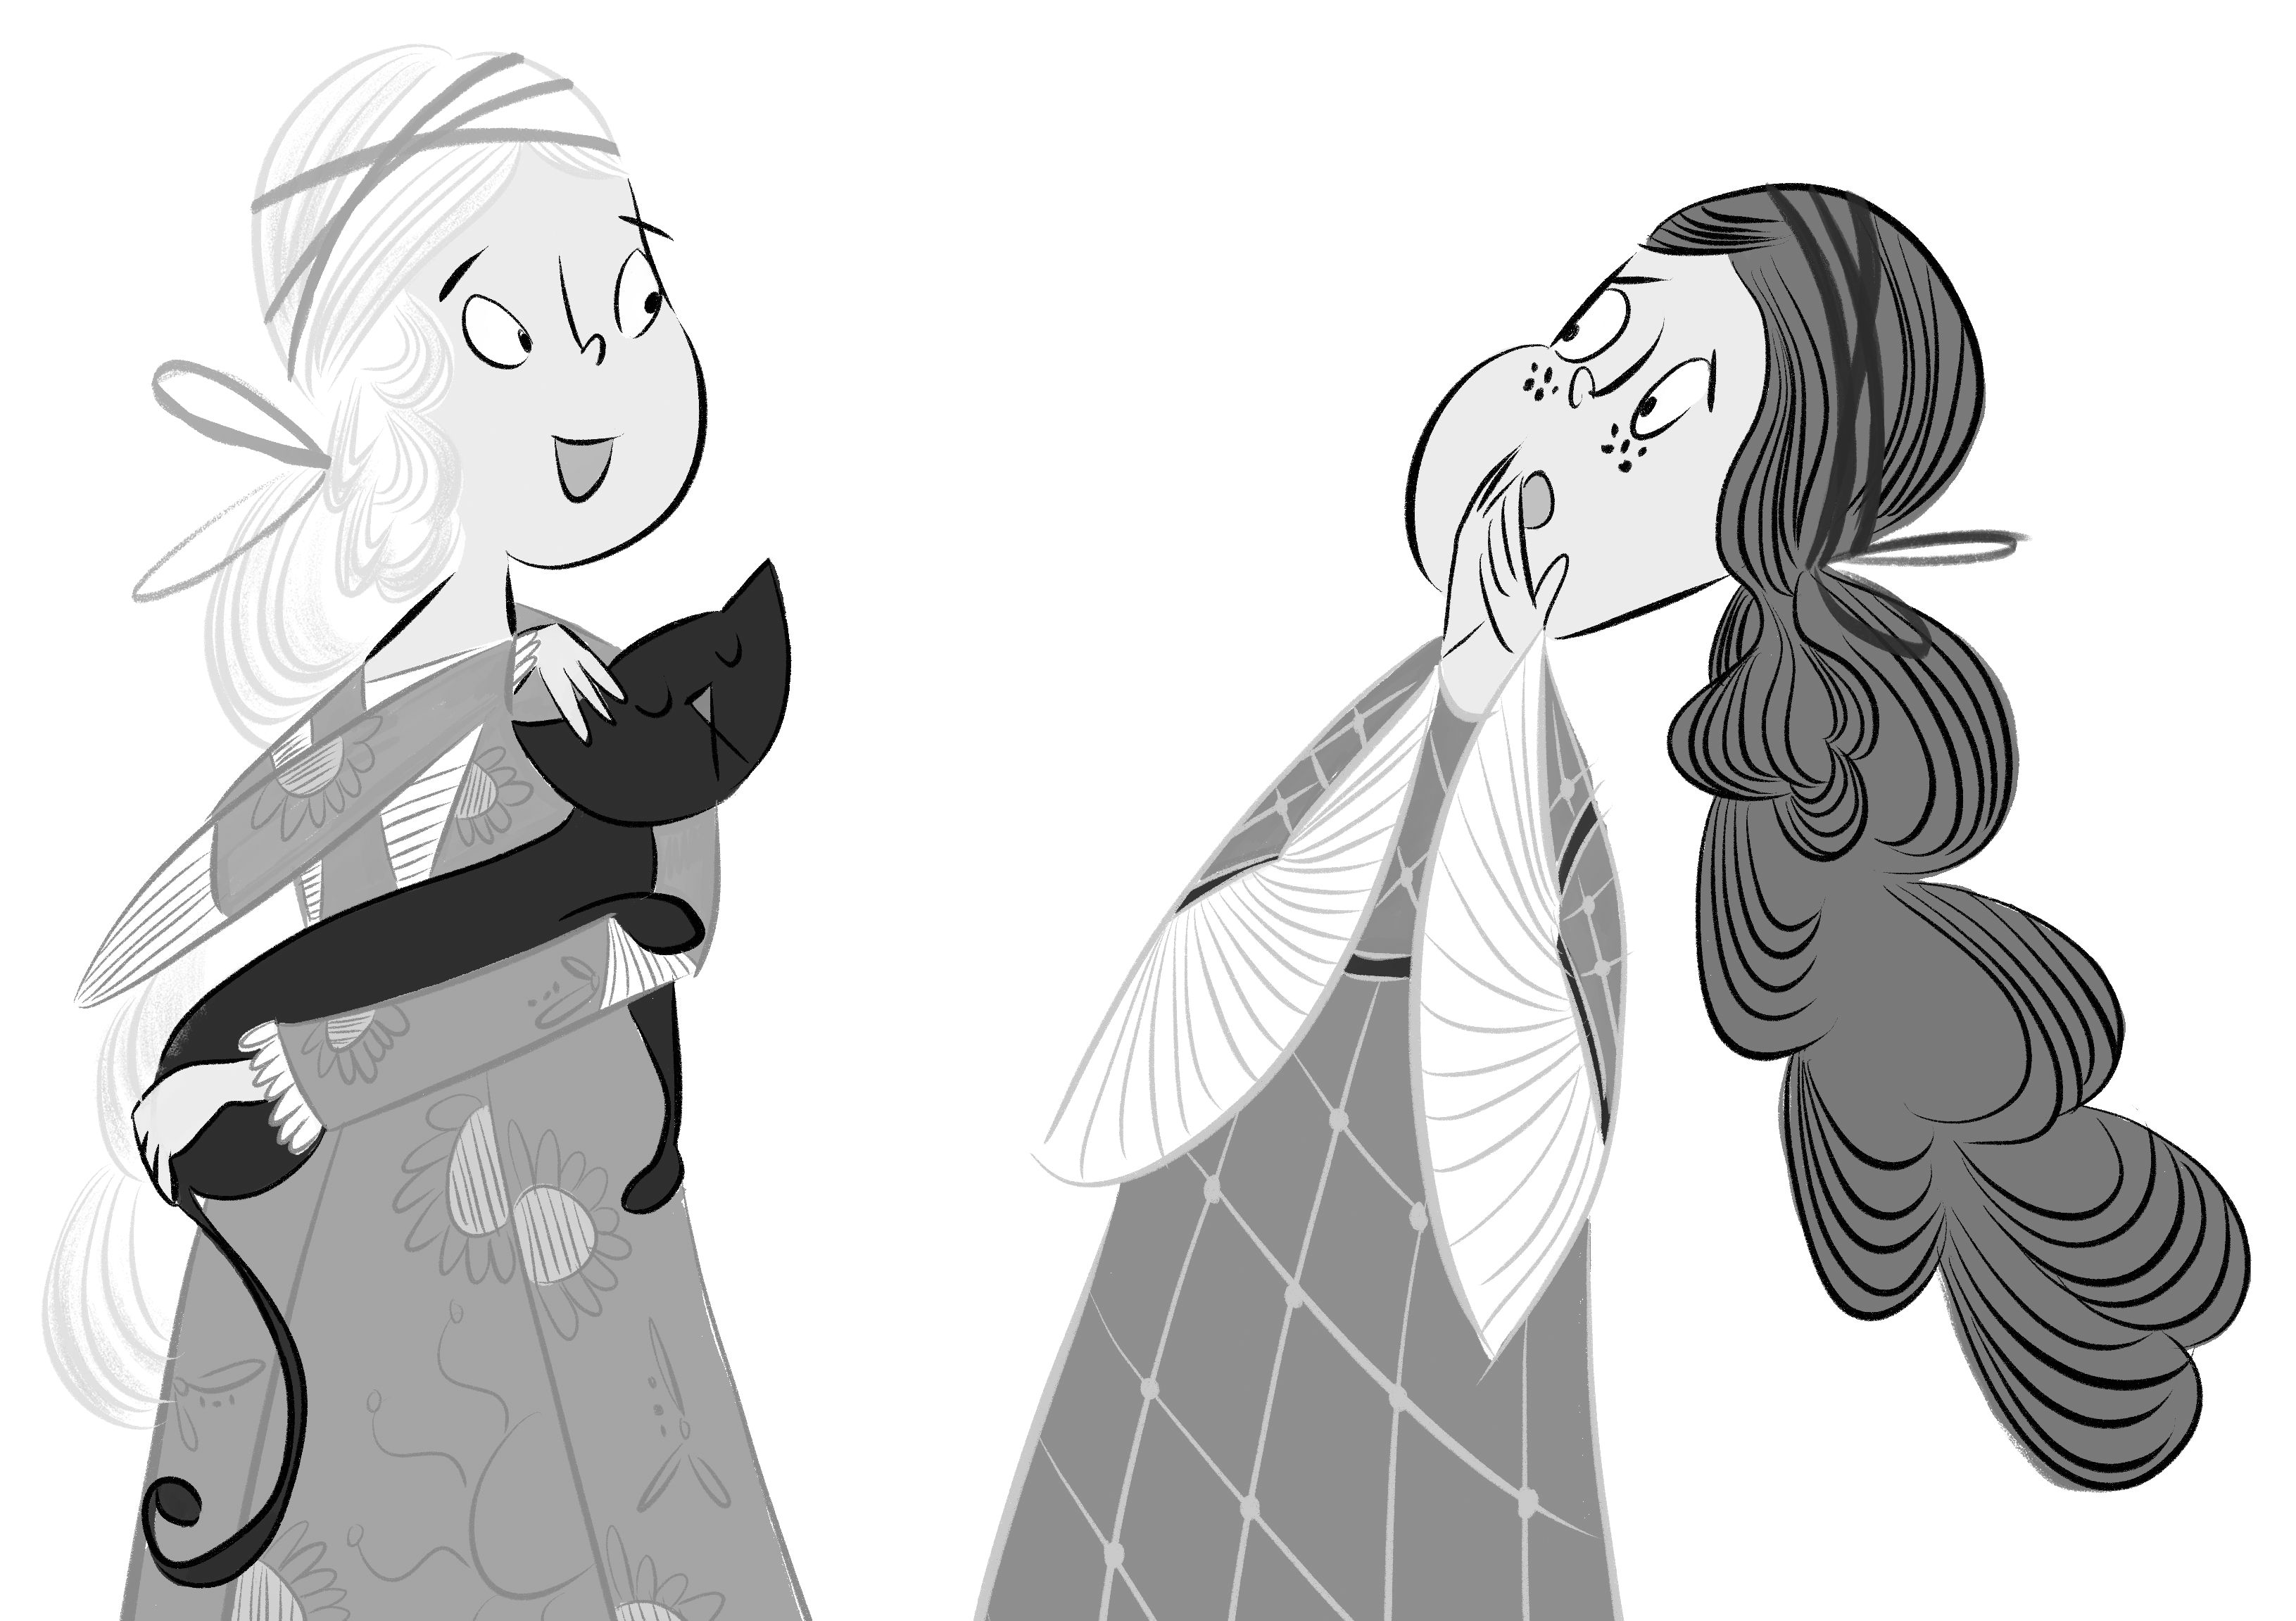 Clare, holding Angelica the cat, discusses her plans with Katie. Illustration by Jenn Bower.